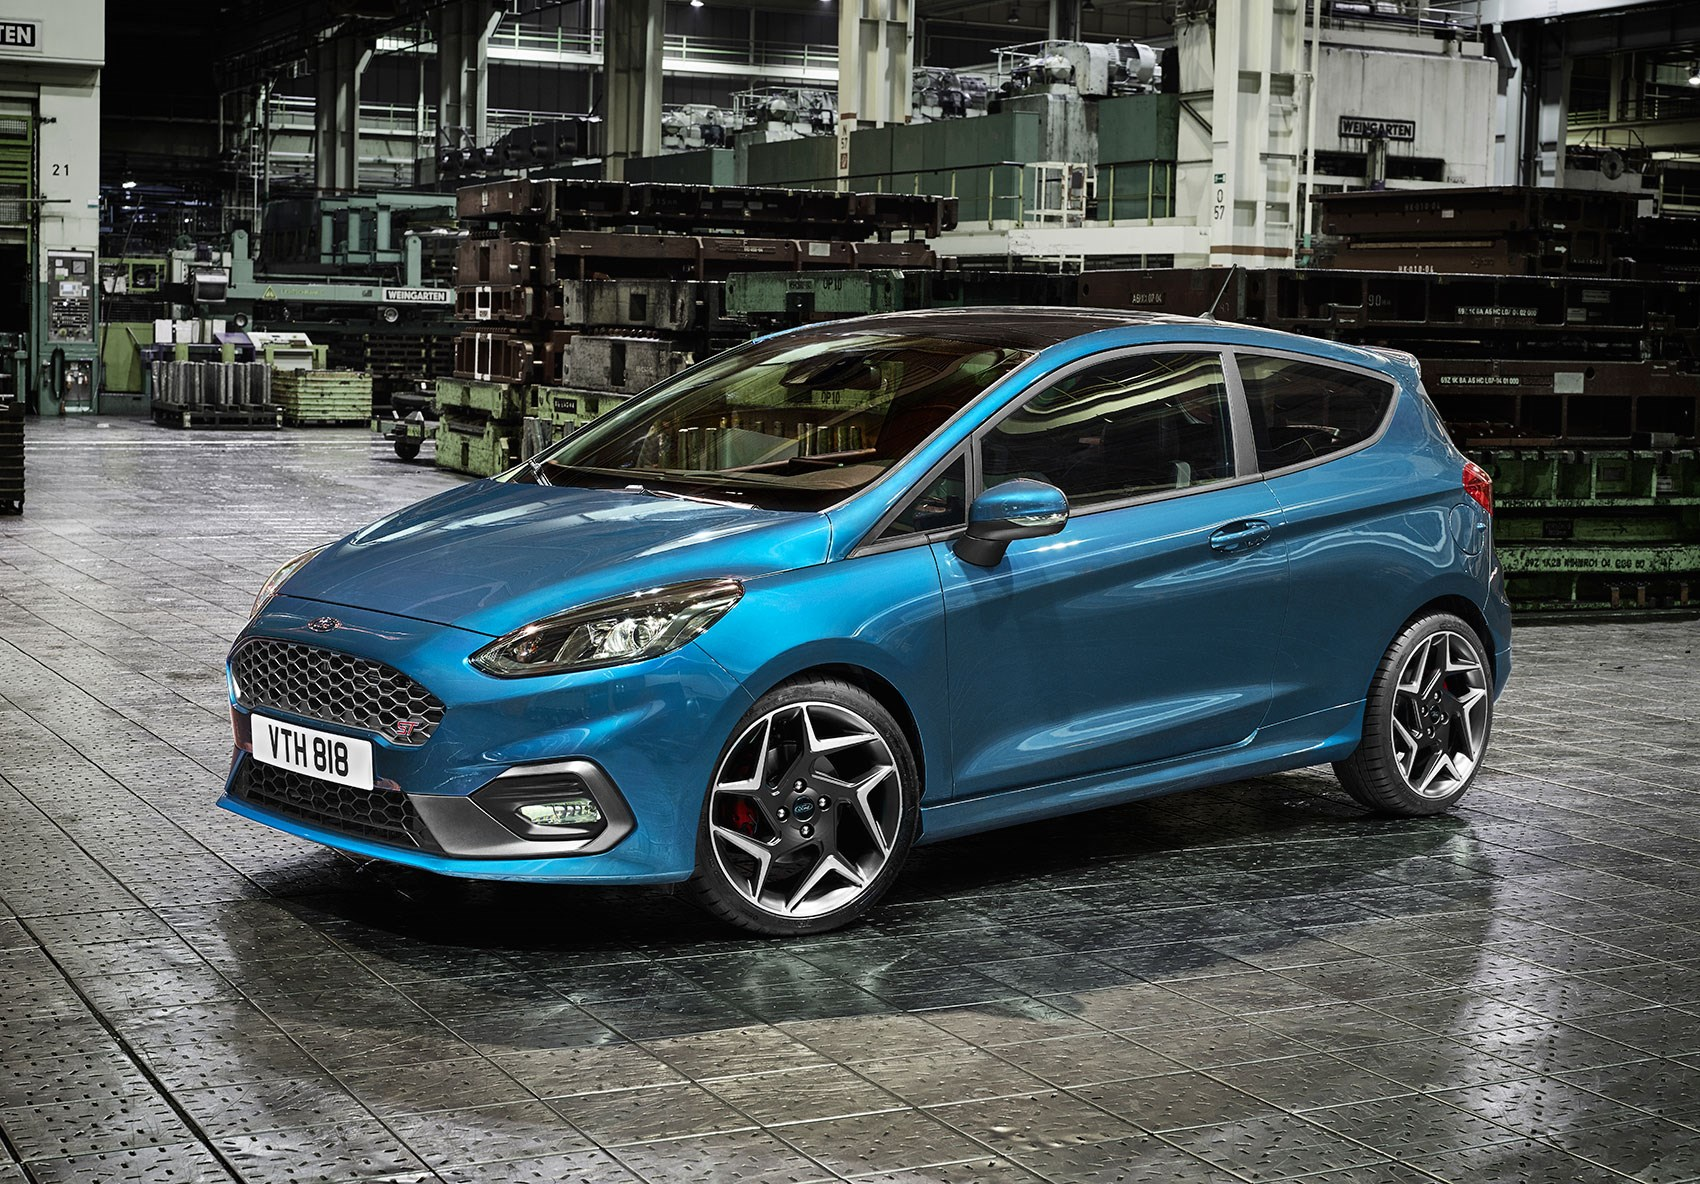 The new Ford Fiesta ST hot hatch ... & New Ford Fiesta ST 2017: news specs and photos by CAR Magazine markmcfarlin.com